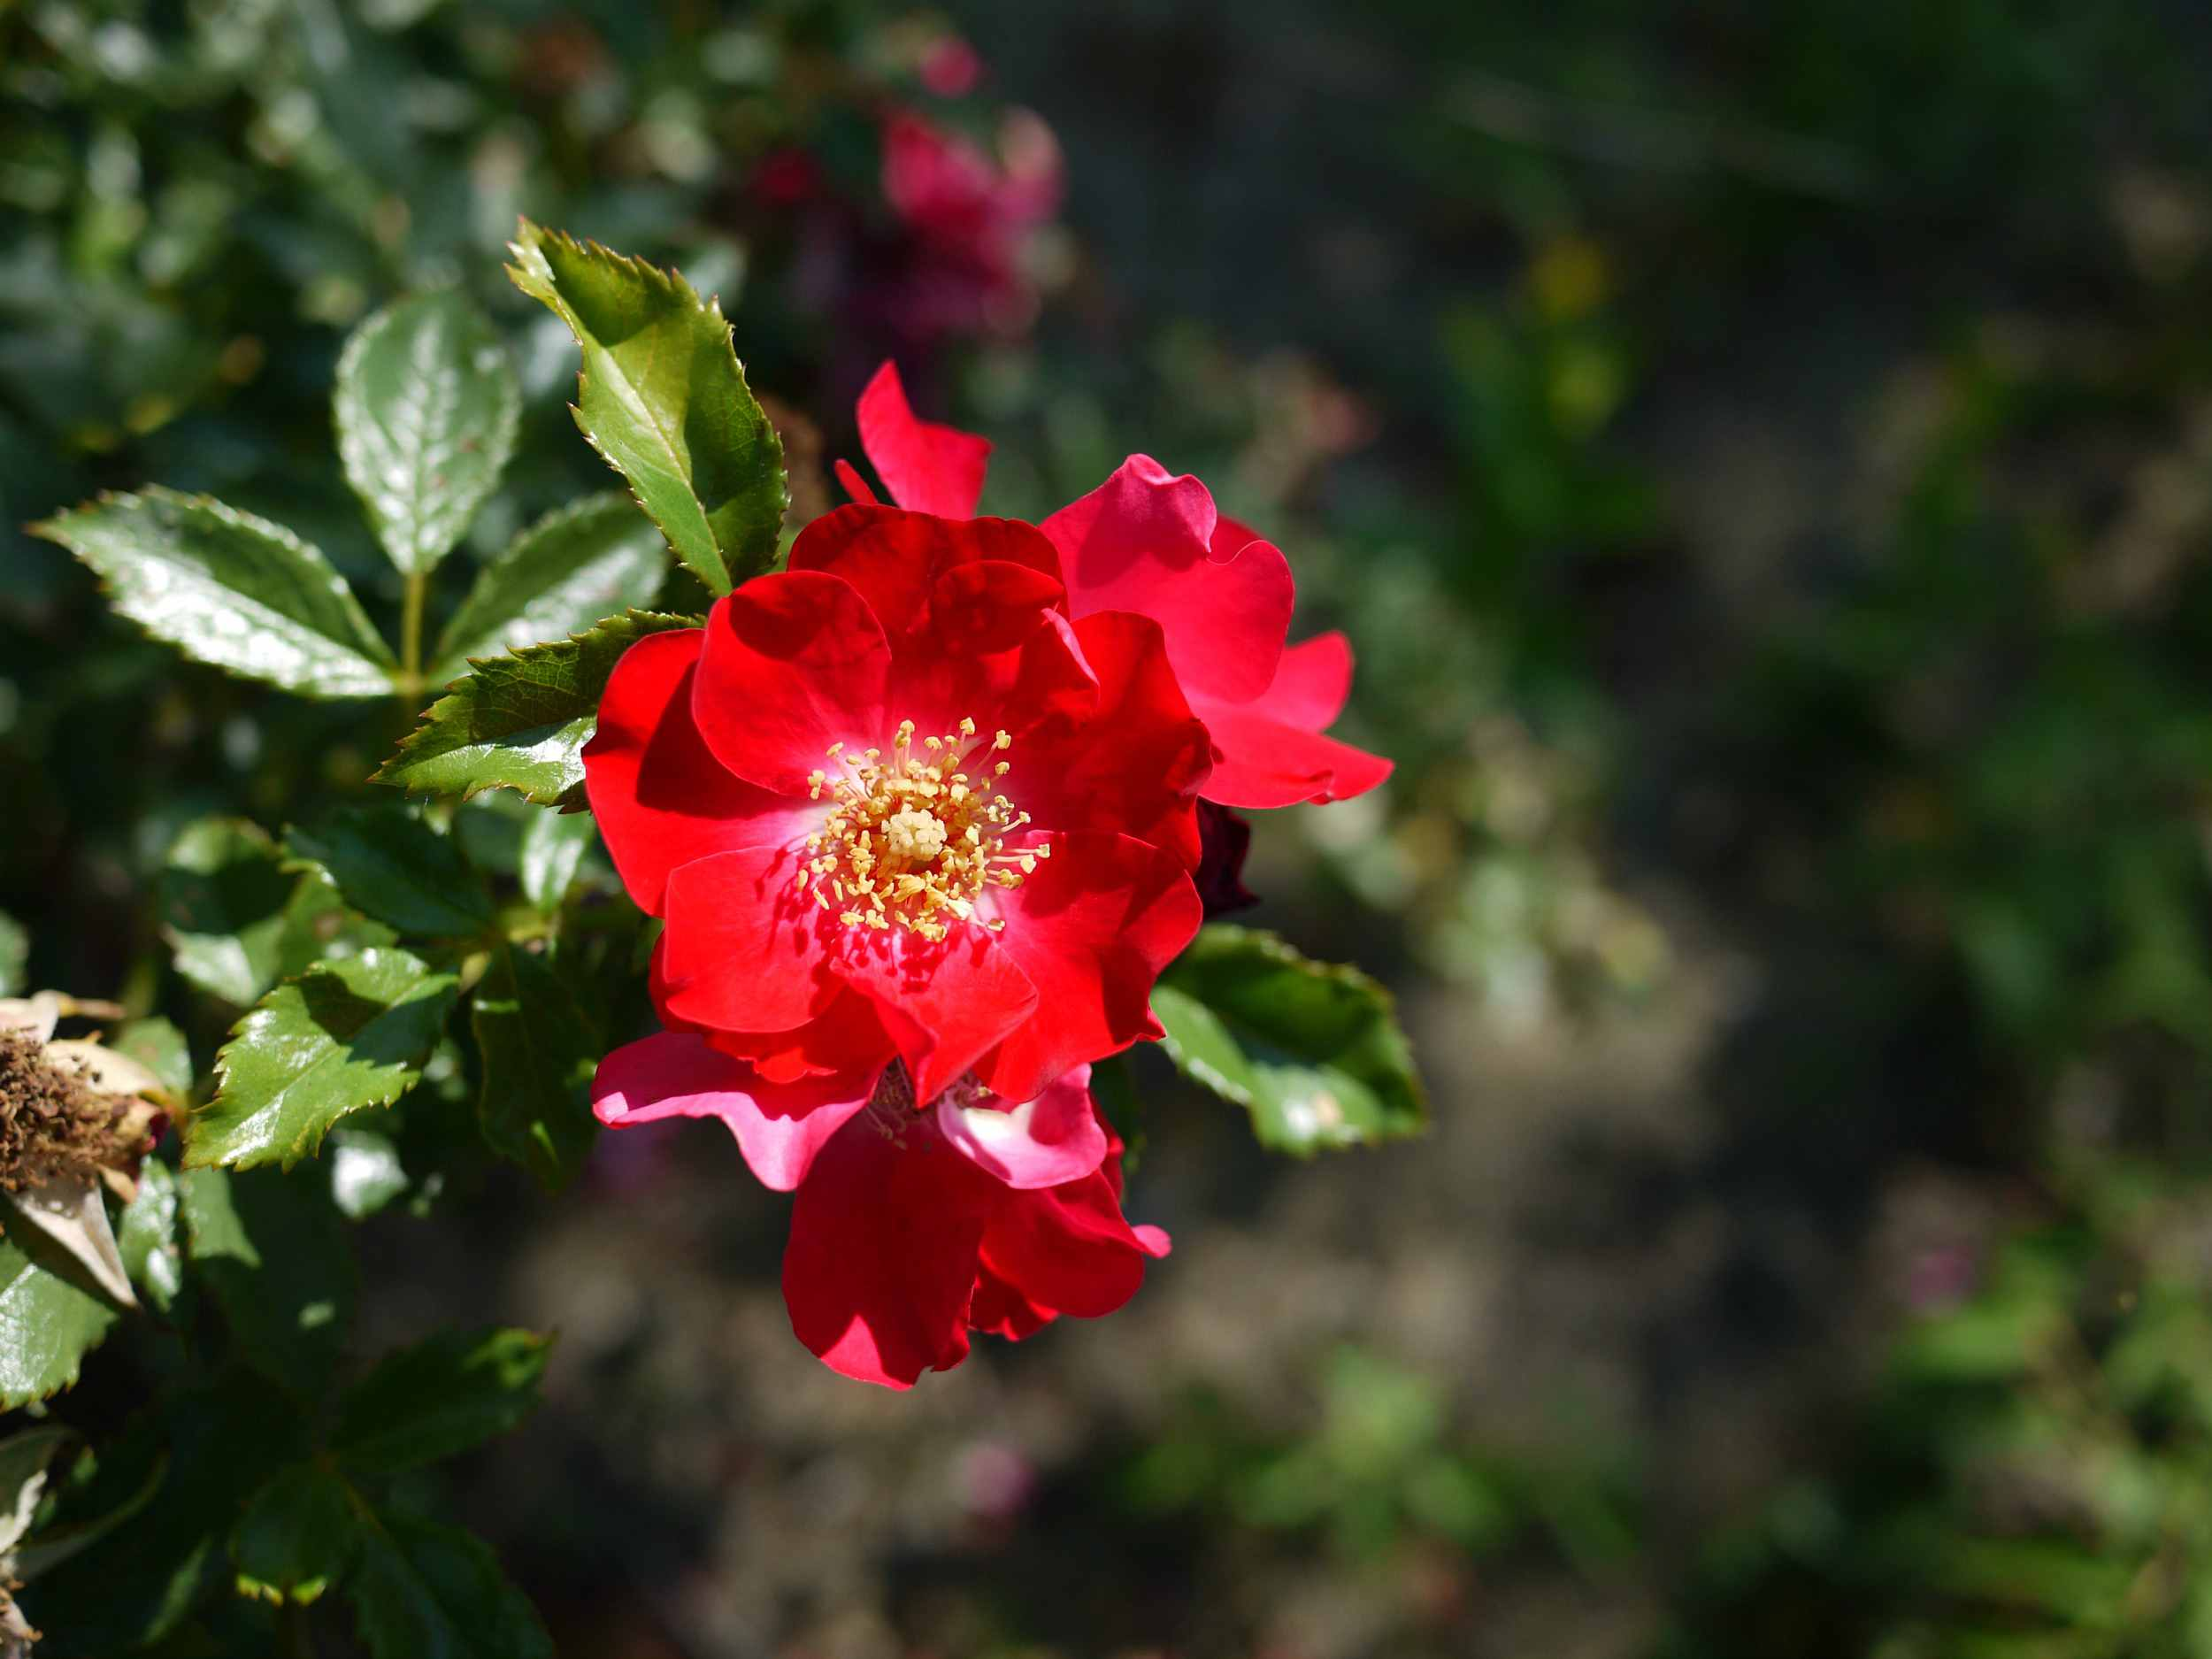 red altissimo rose